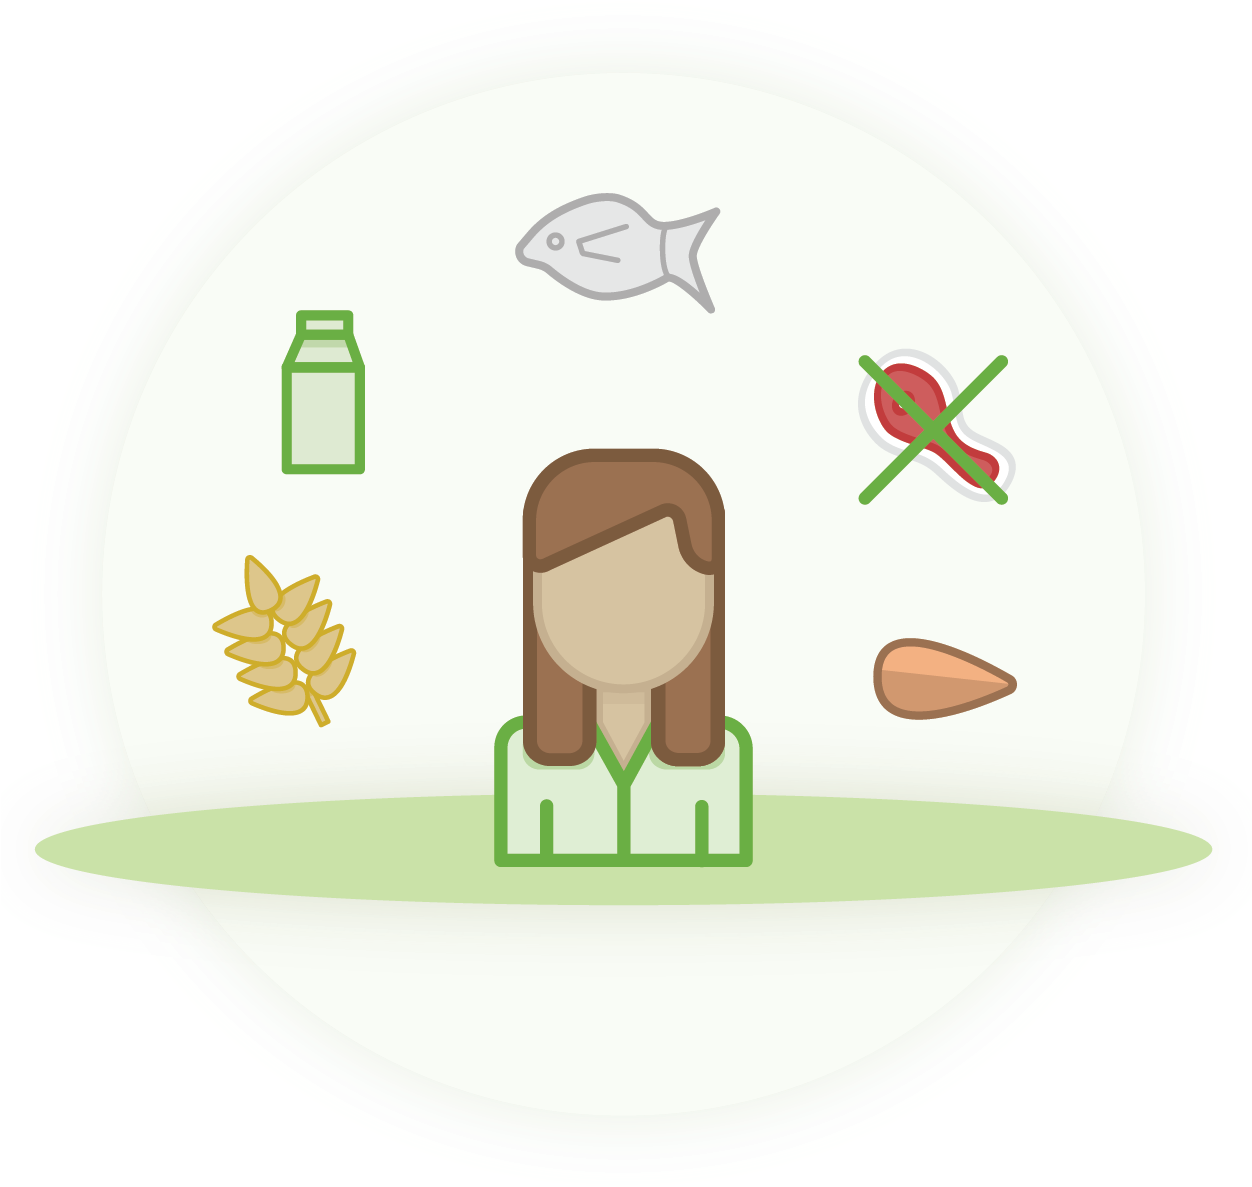 Transparent healthy eating clipart - Technology Wellio The Challenge - Def Leppard Adrenalize